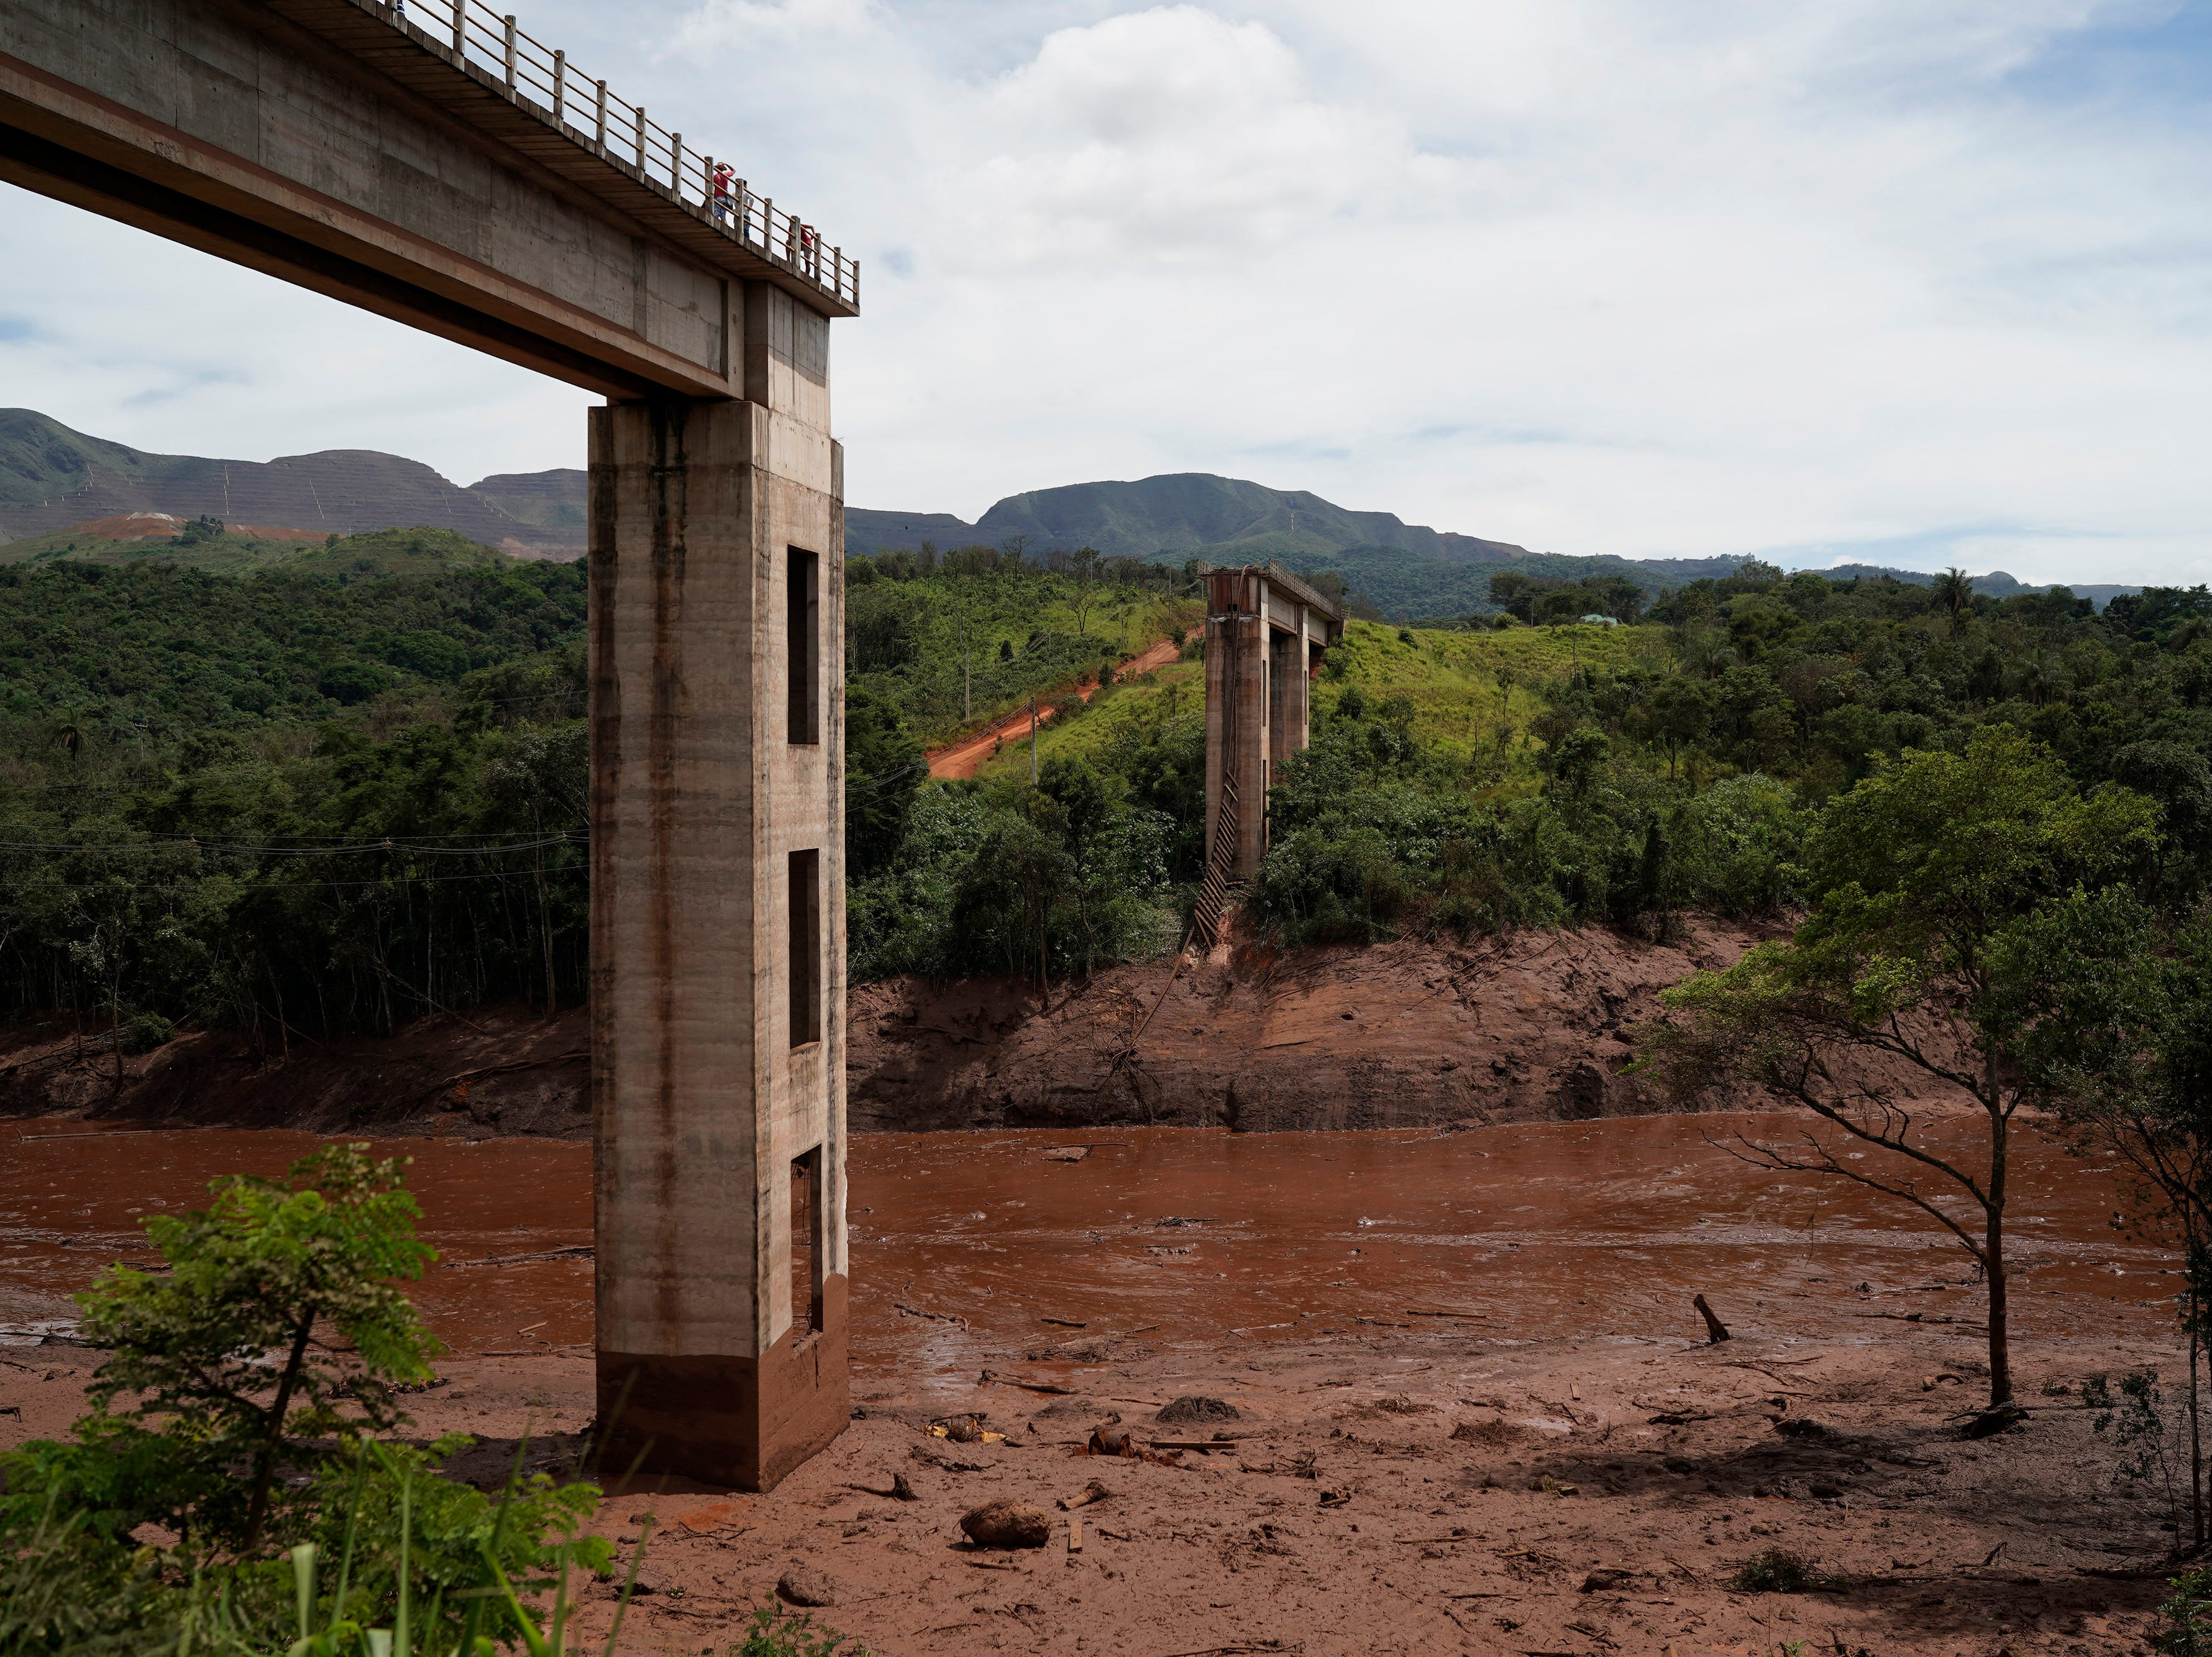 A rail bridge stands cut in half two days after a dam collapse in Brumadinho, Brazil, Sunday, Jan. 27, 2019. Brazilian officials on Sunday suspended the search for potential survivors of a dam collapse that has killed at least 40 people amid f